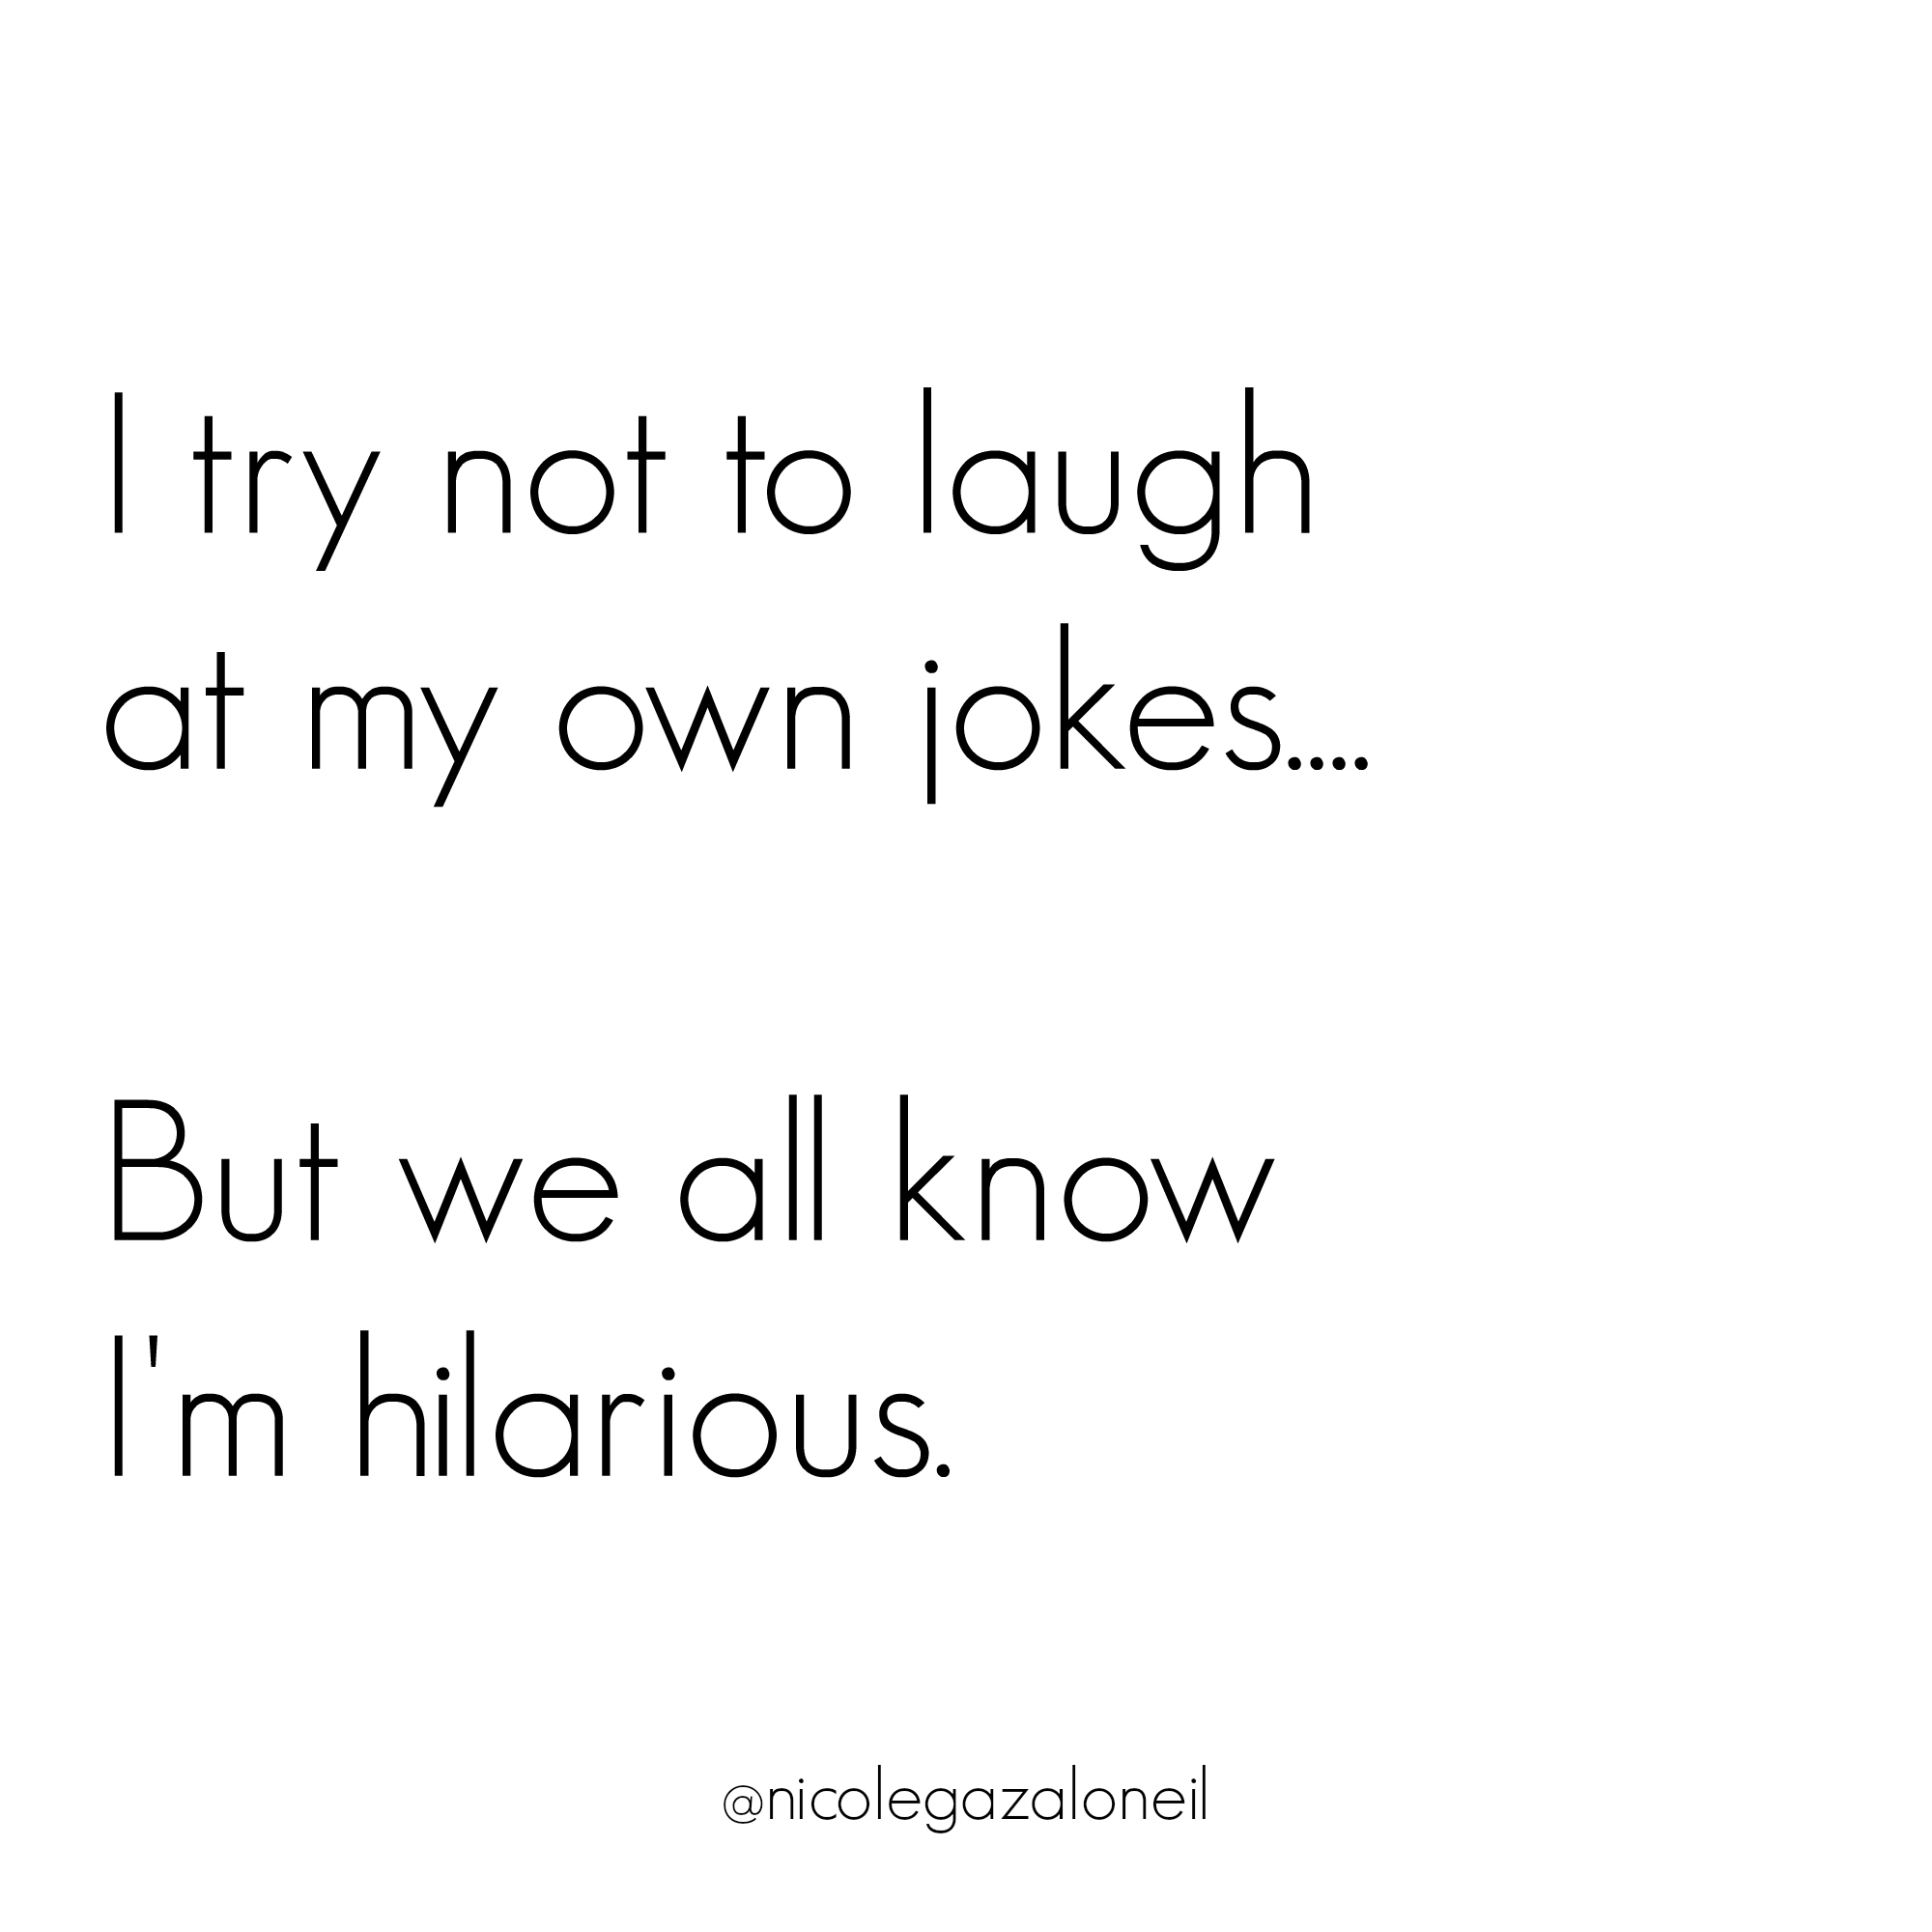 I try not to laugh at my own jokes but we all know I'm hilarious.jpg